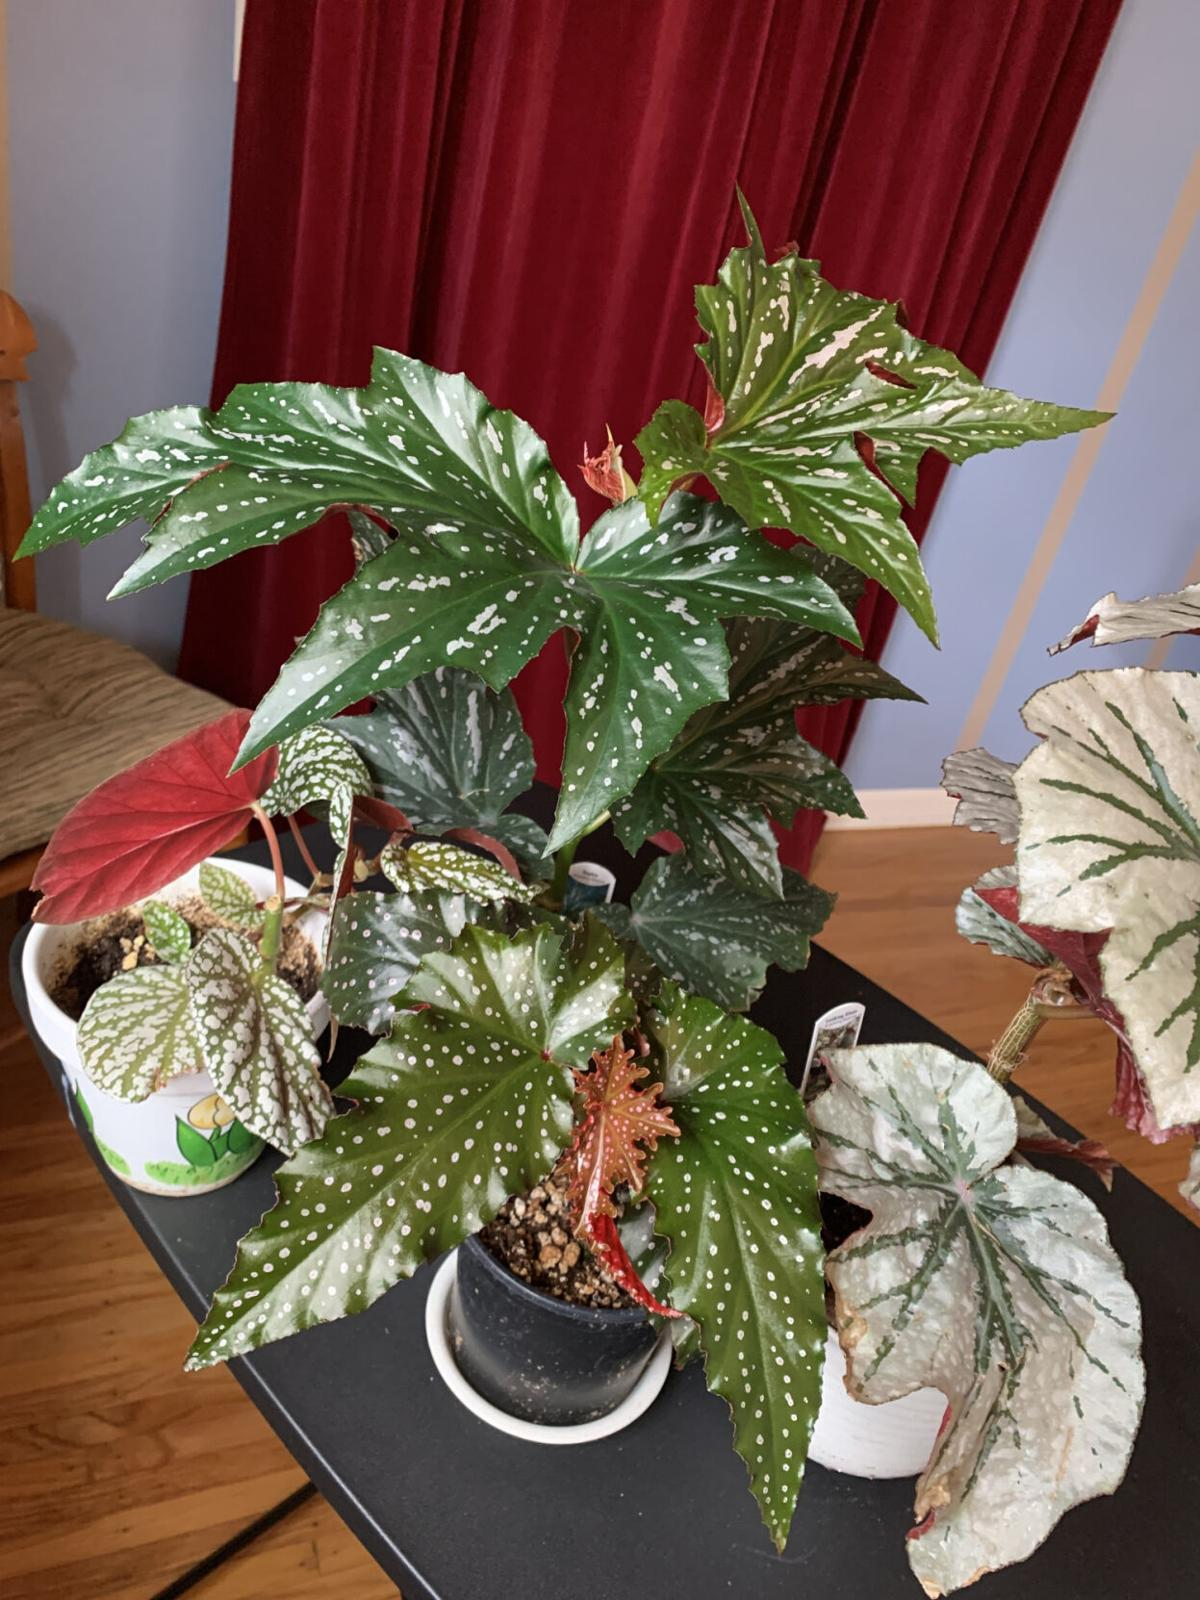 Now is good time to tend to houseplants